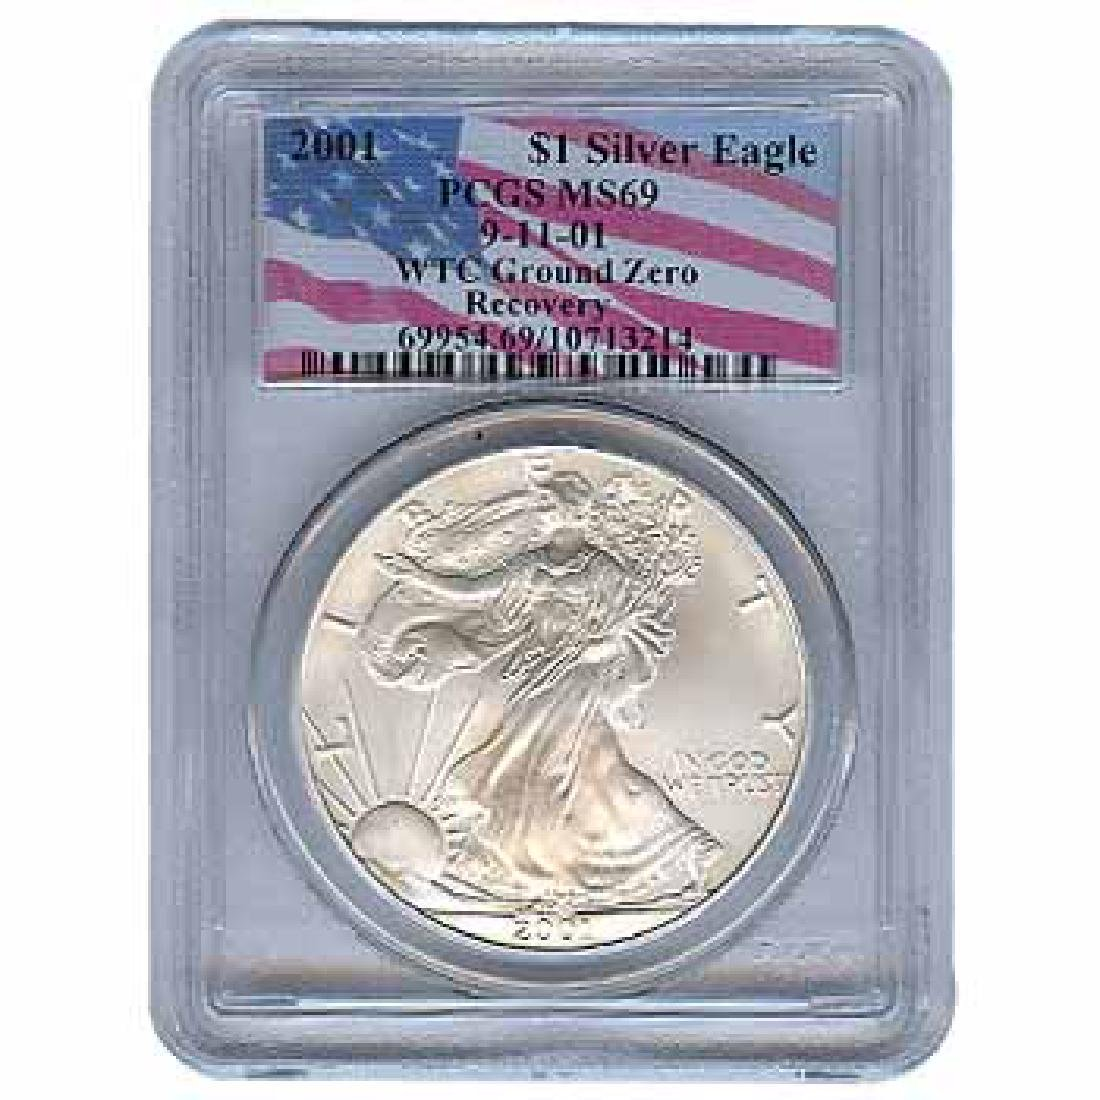 Certified Silver Eagle WTC Ground Zero Recovery 2001 MS